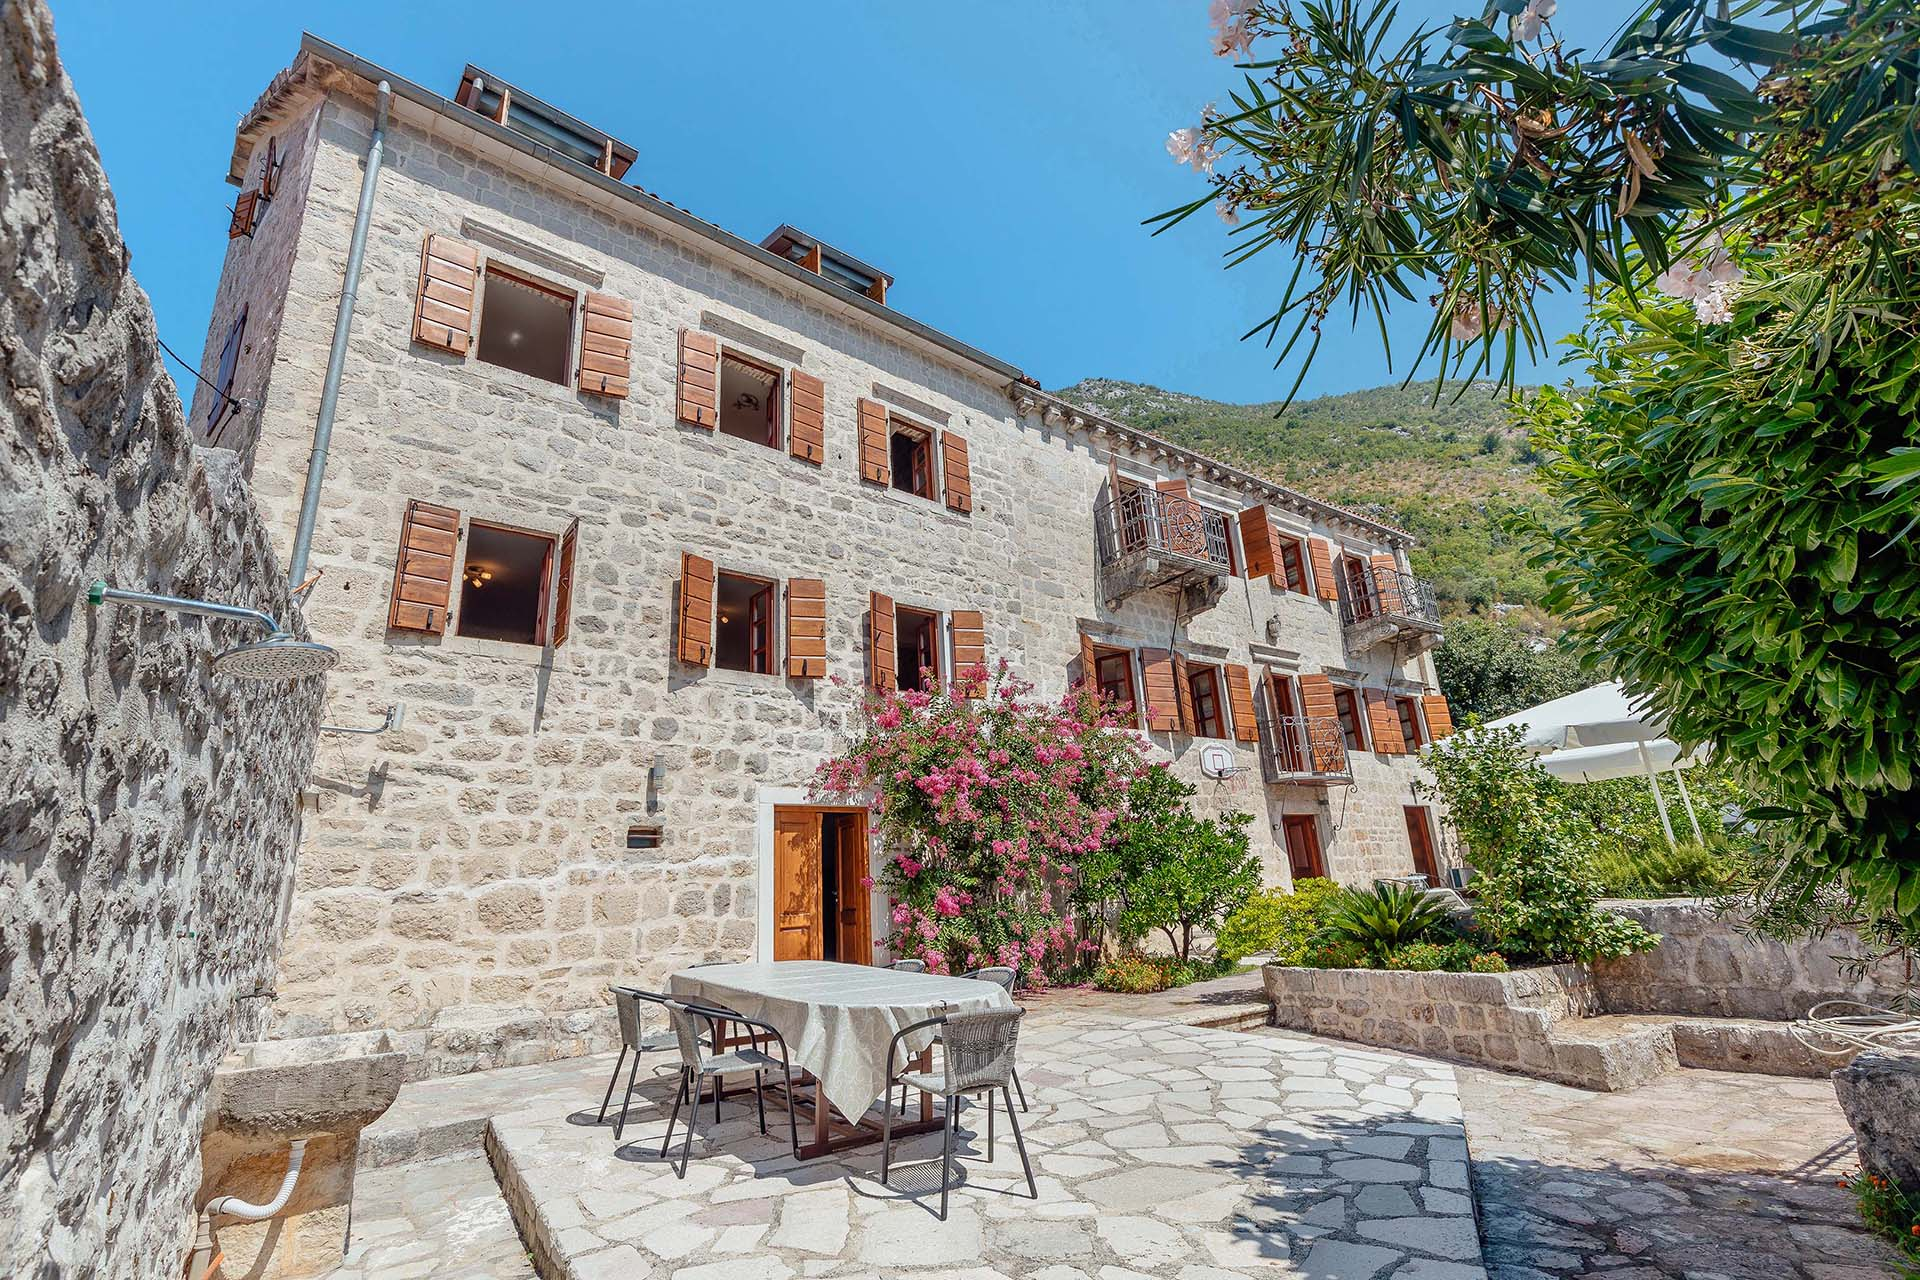 Kotor, Perast – renovated stone palace from the 17th century